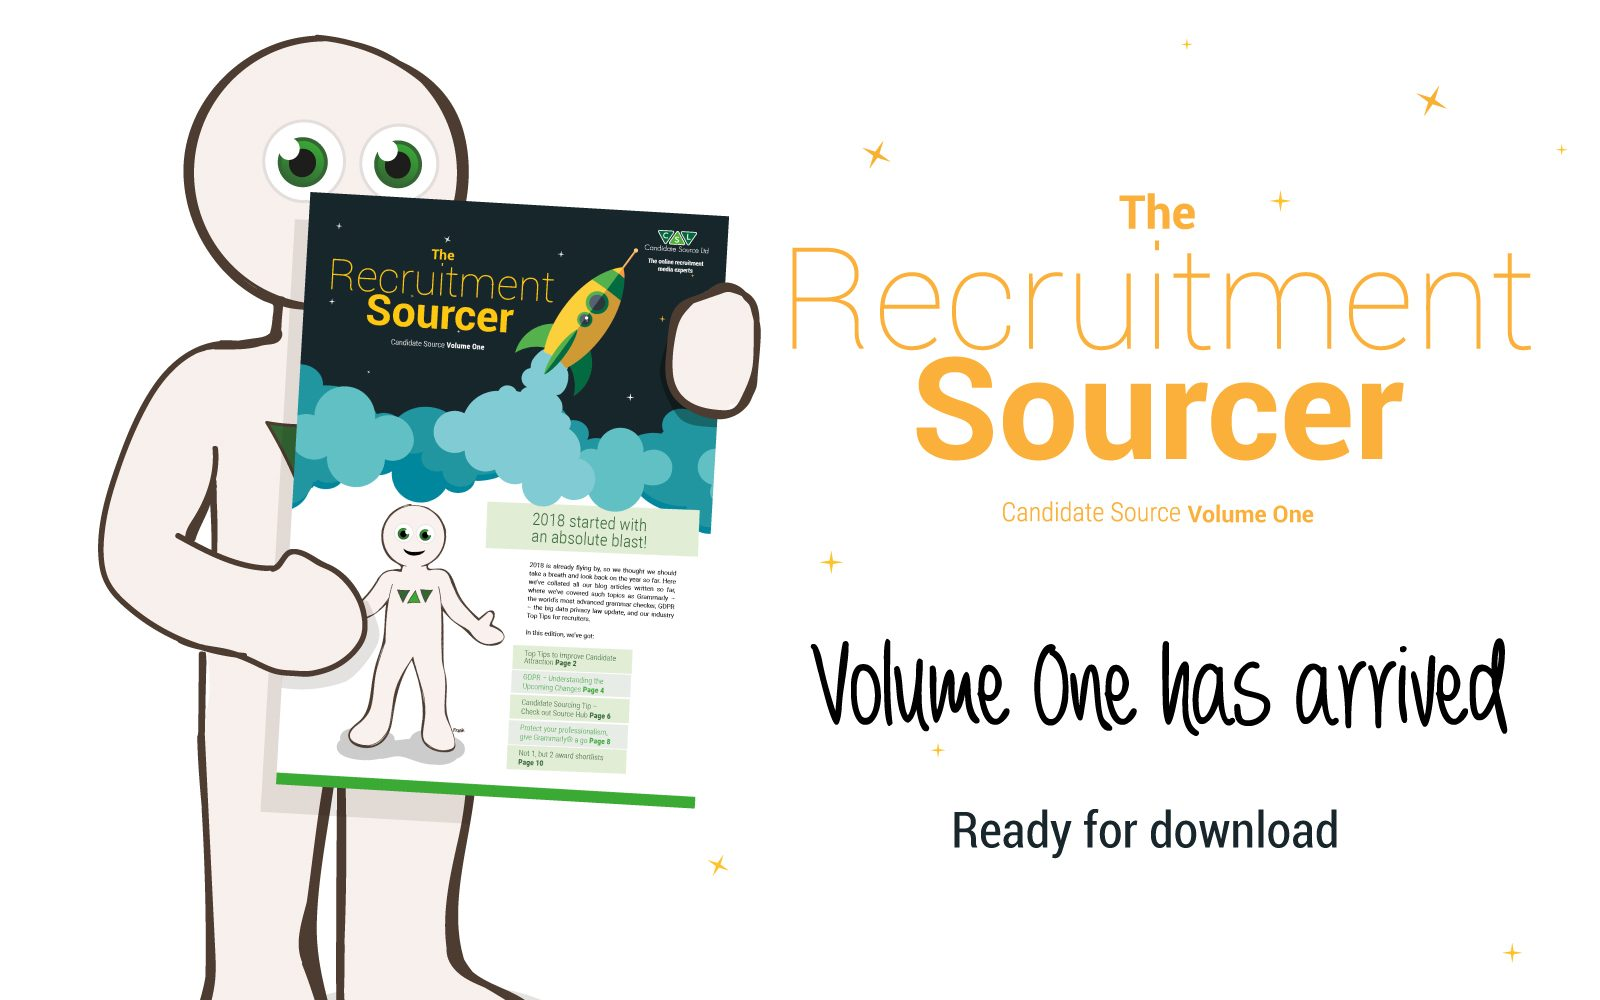 The Recruitment Sourcer Volume 1